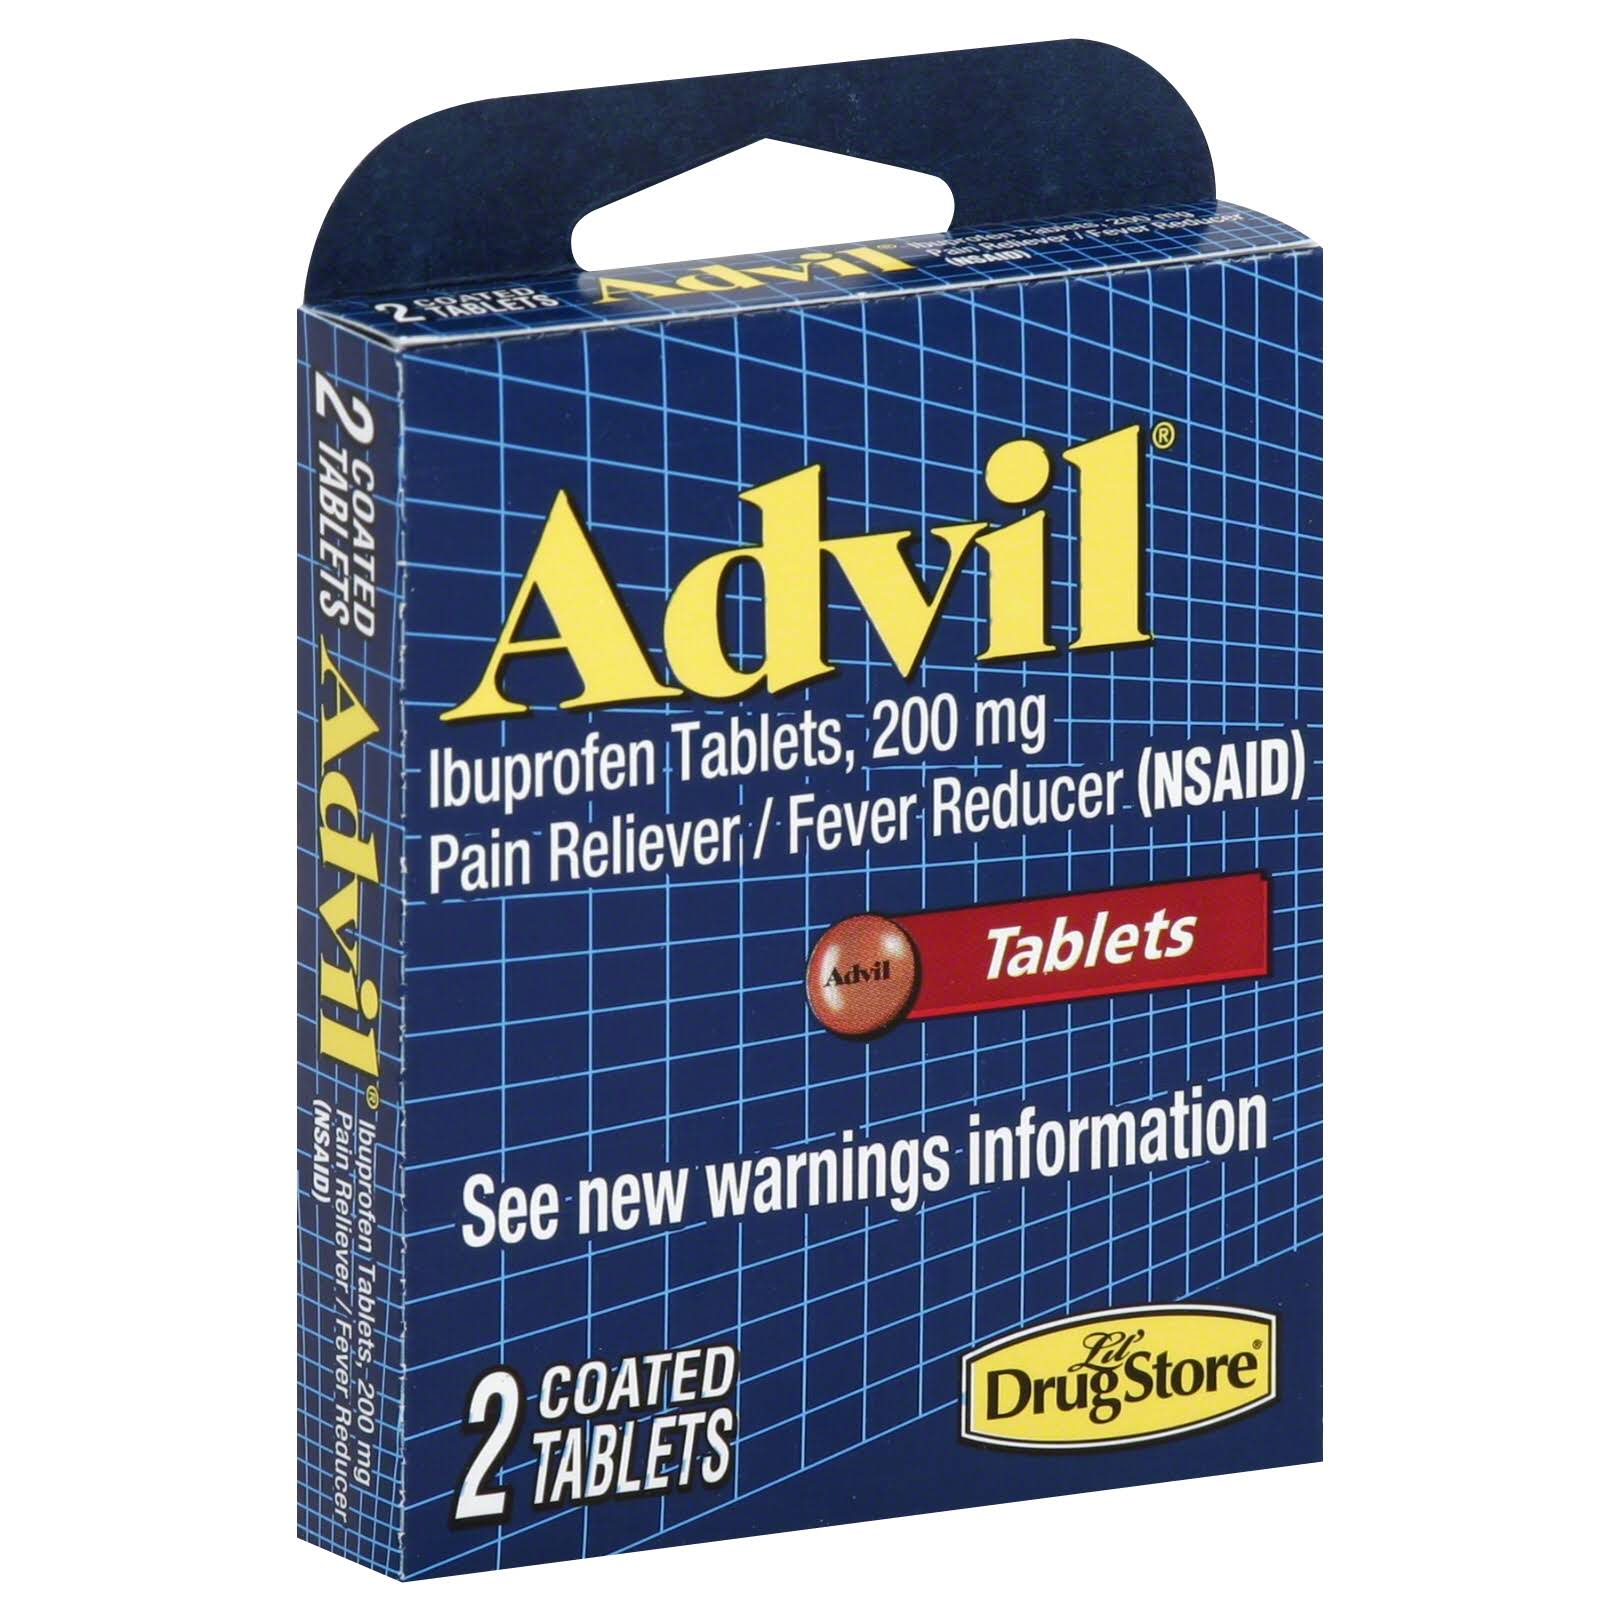 Advil Pain Reliever / Fever Reducer - 200mg